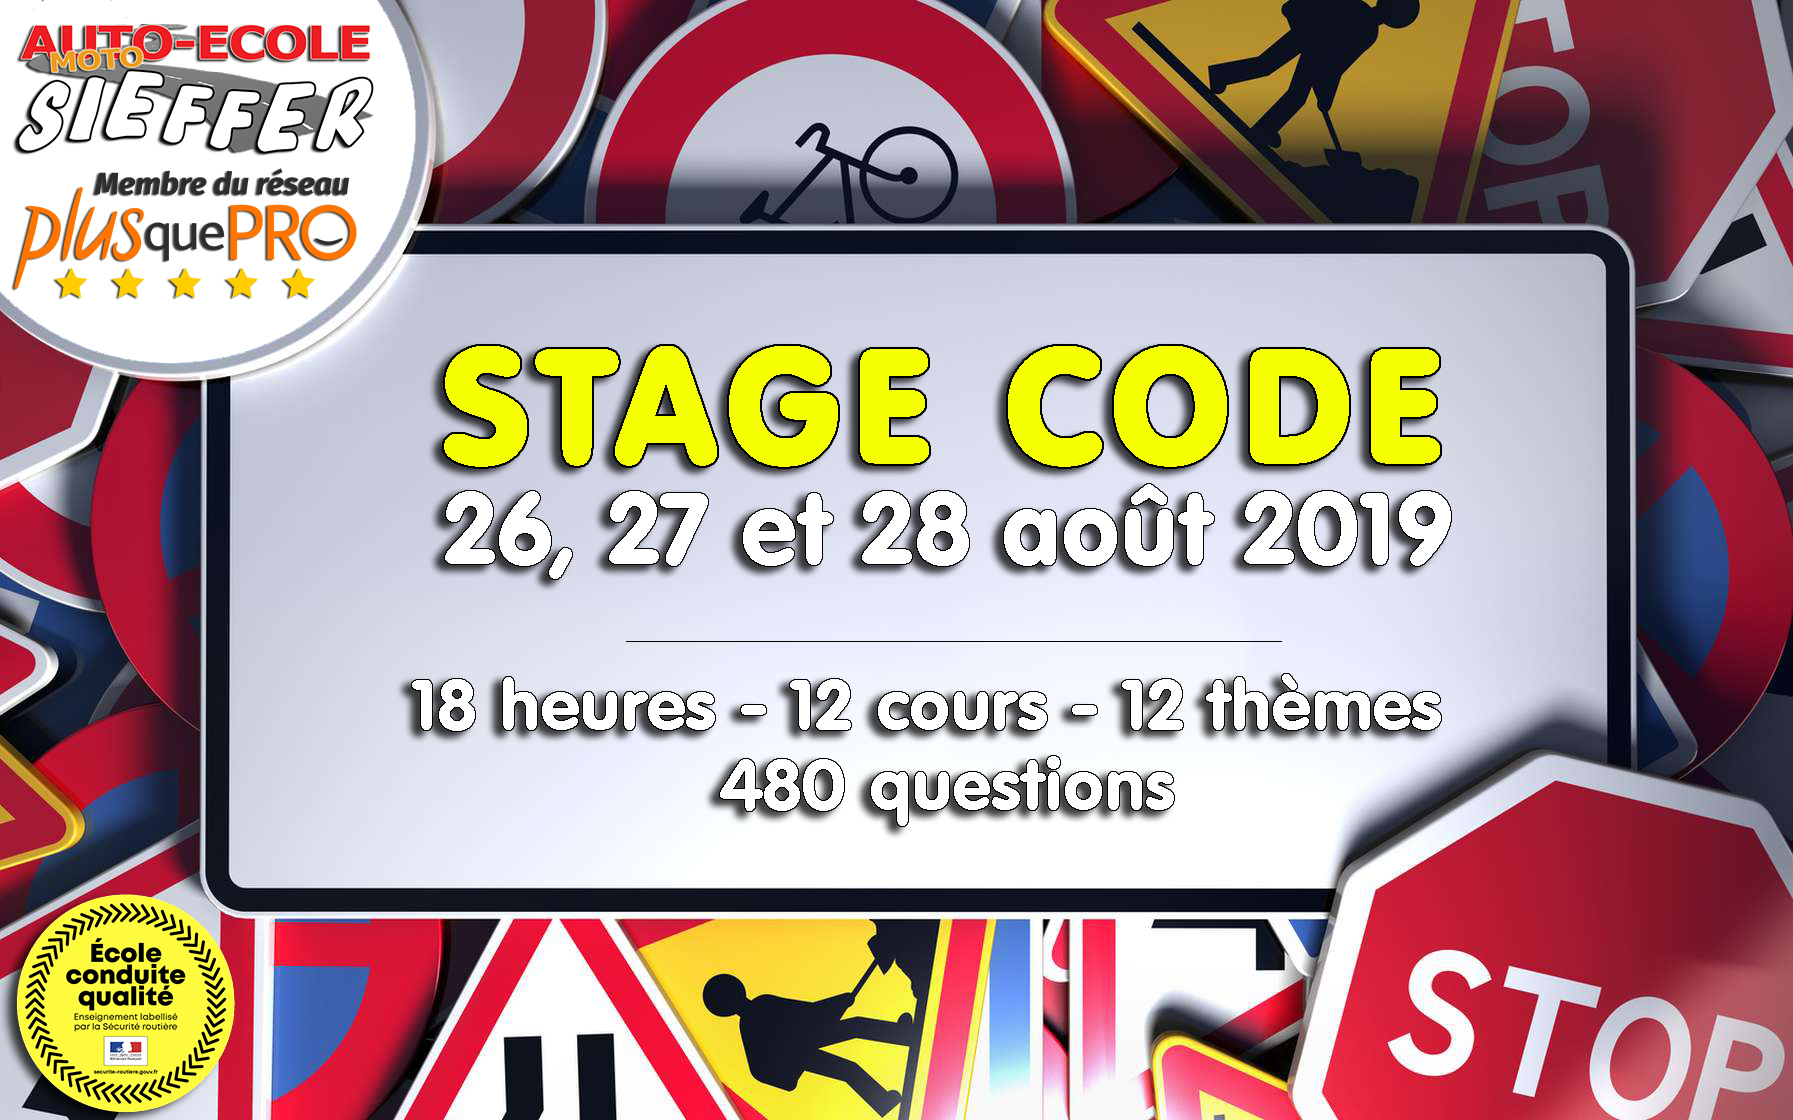 Stage Code Août 2019 - Auto-Moto Ecole Sieffer